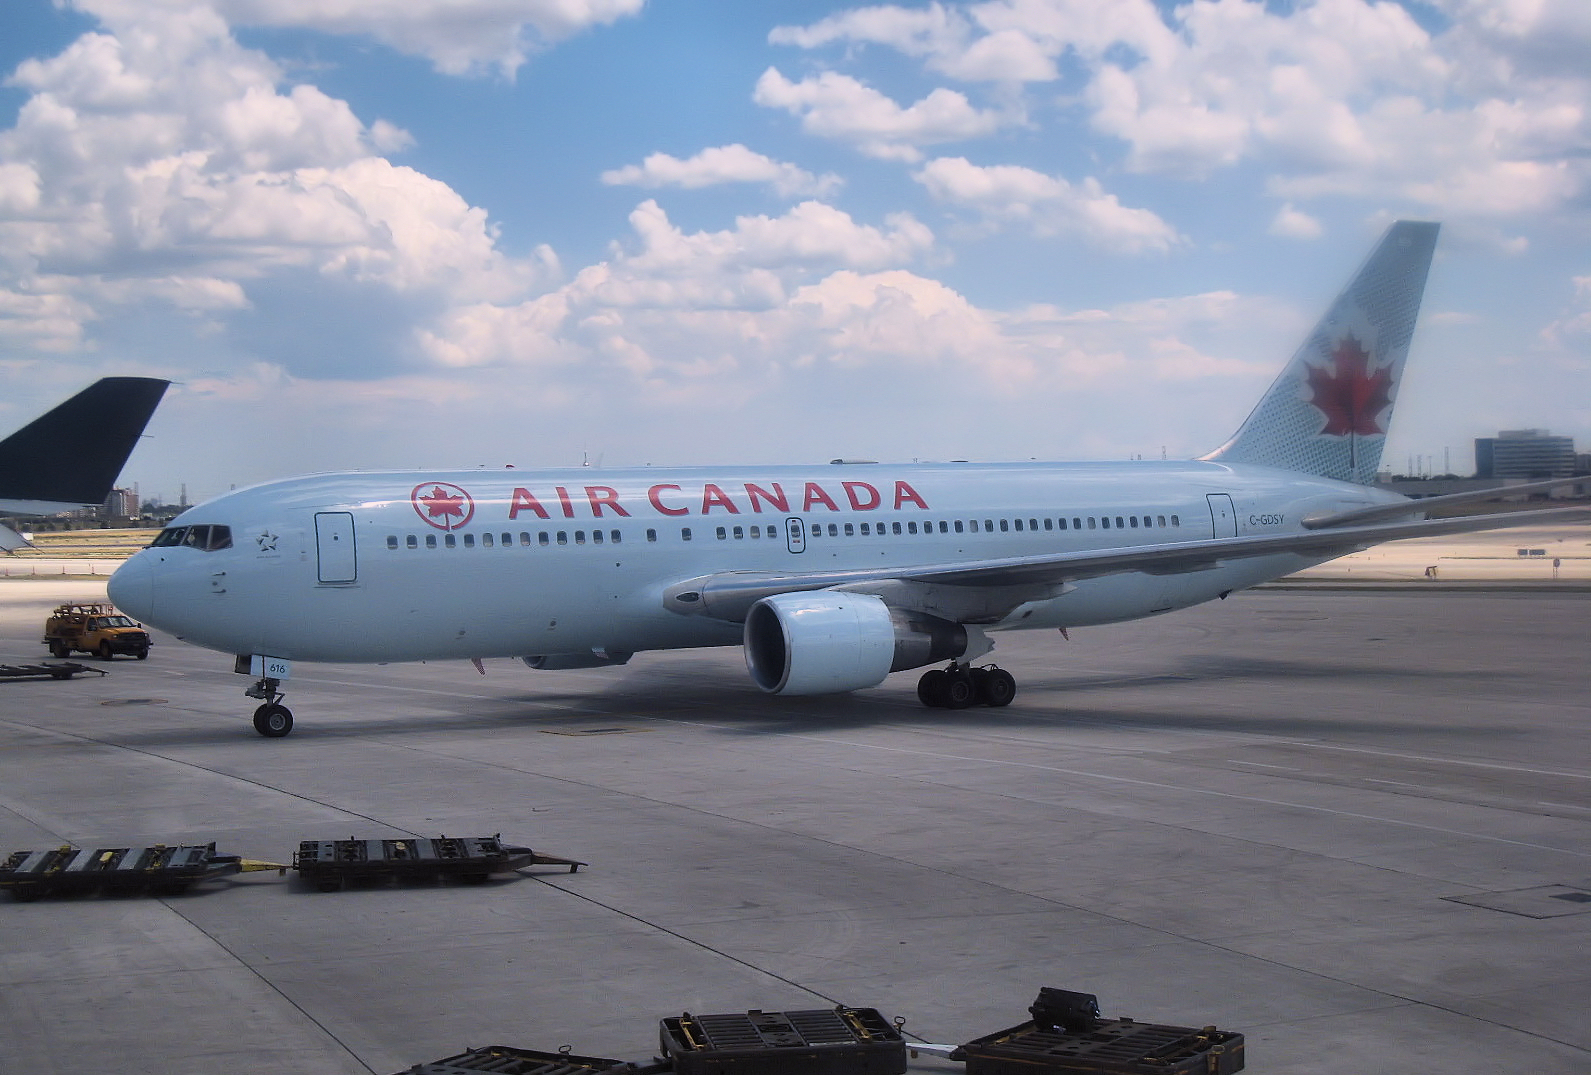 Description Air Canada Boeing767.jpg